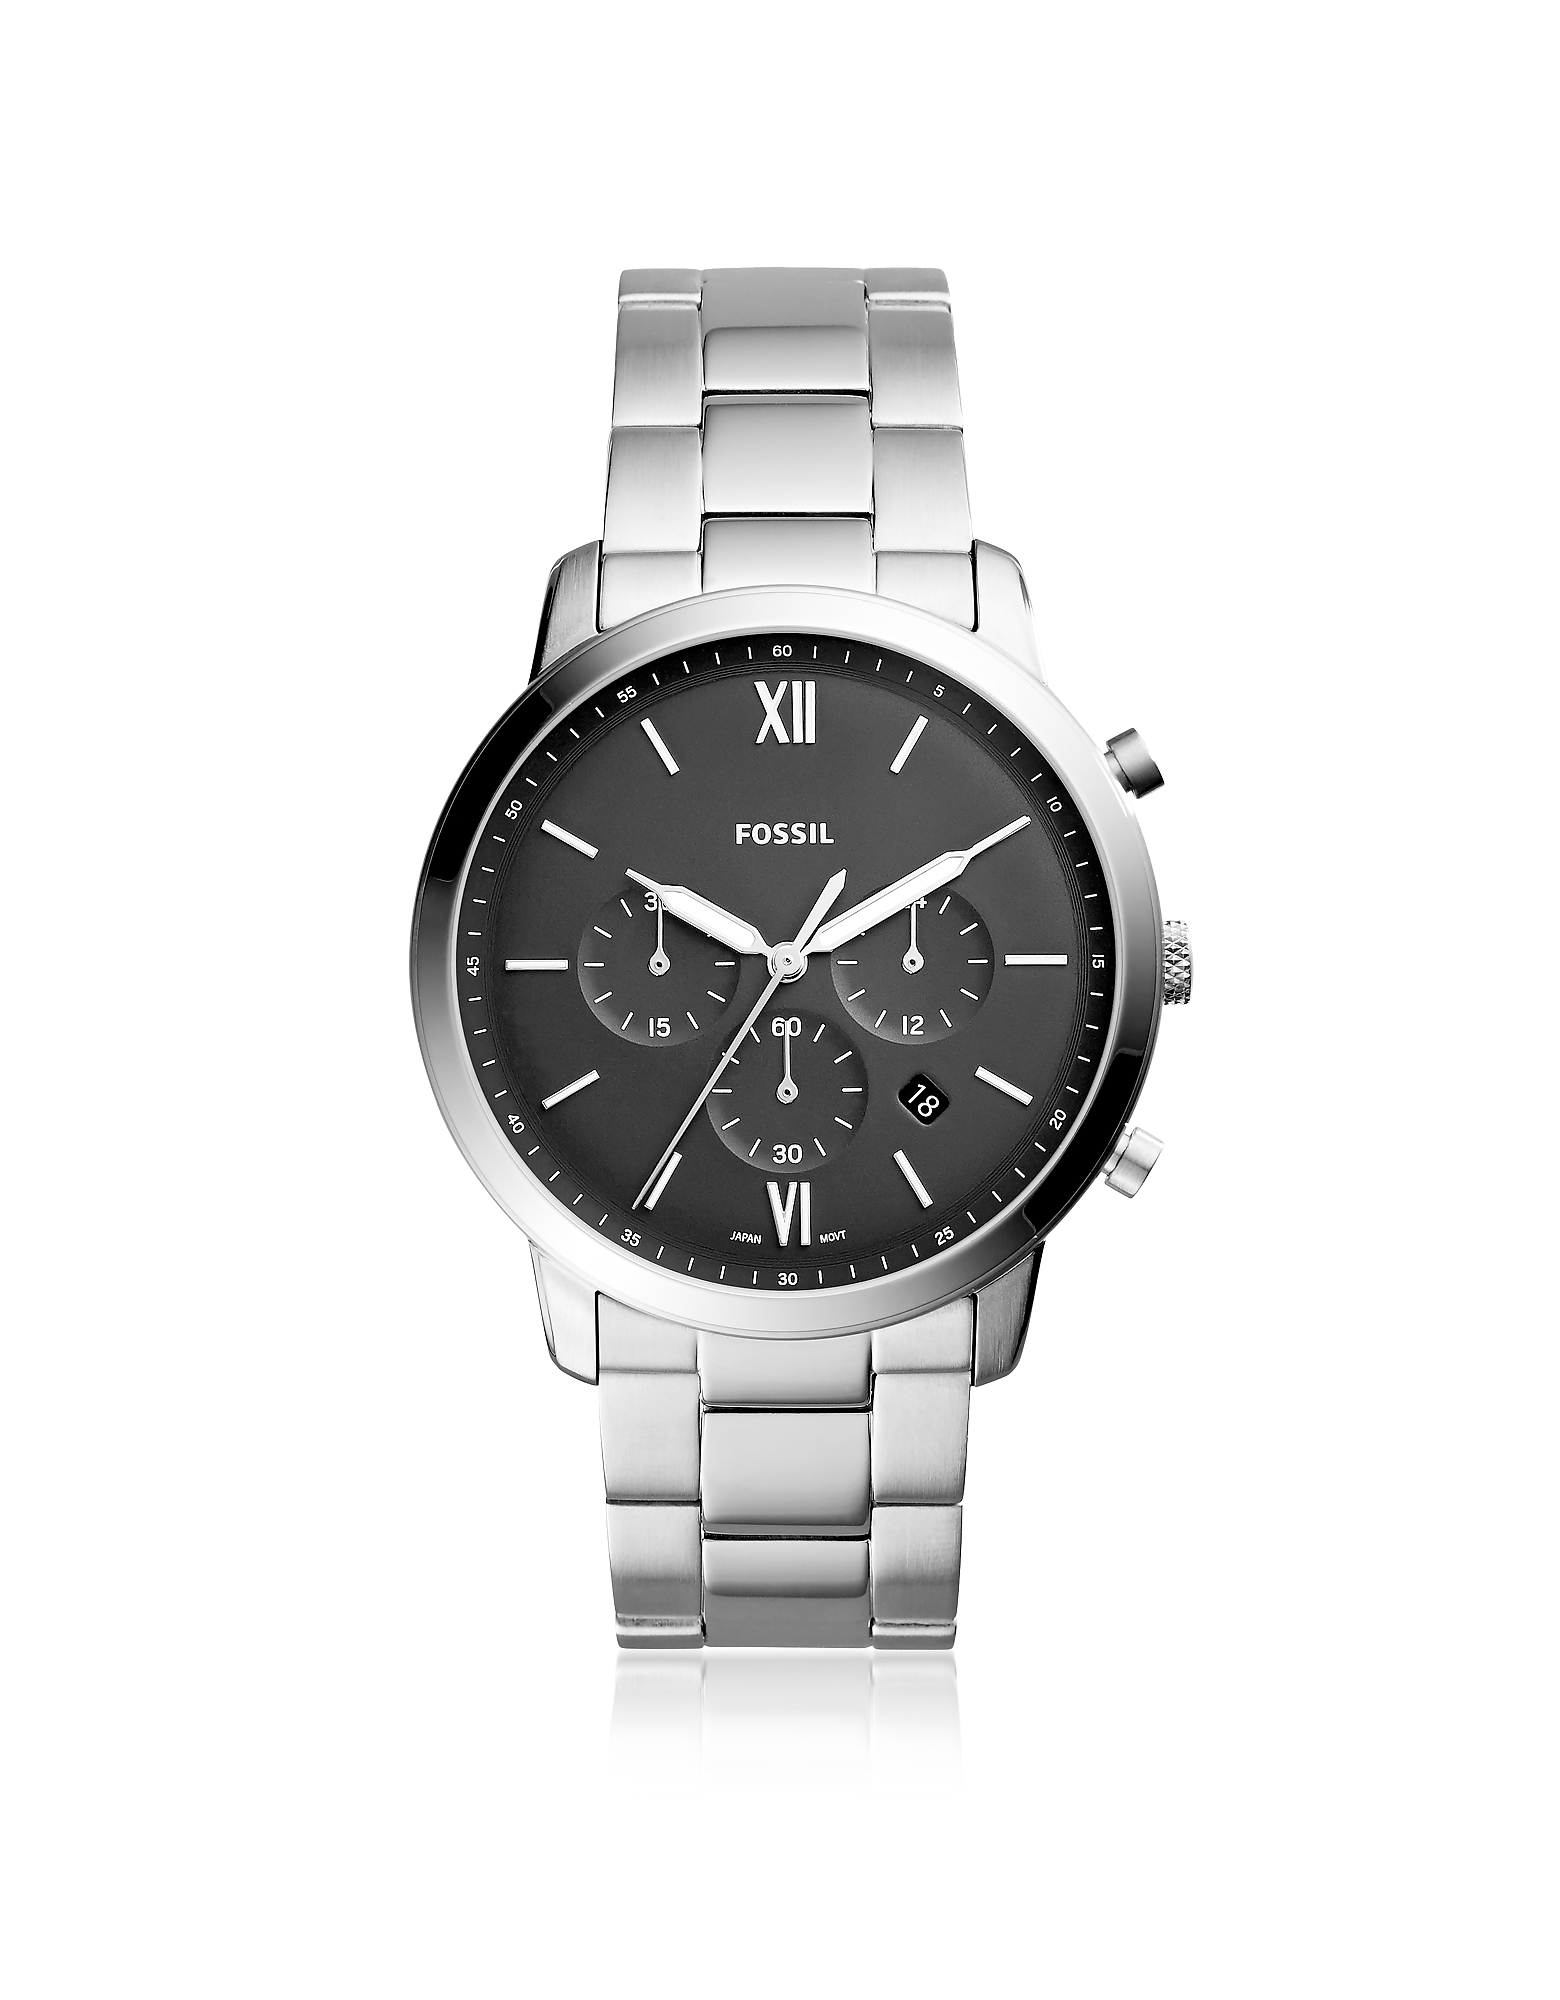 Fossil Men's Watches, Neutra Chronograph Stainless Steel Men's Watch